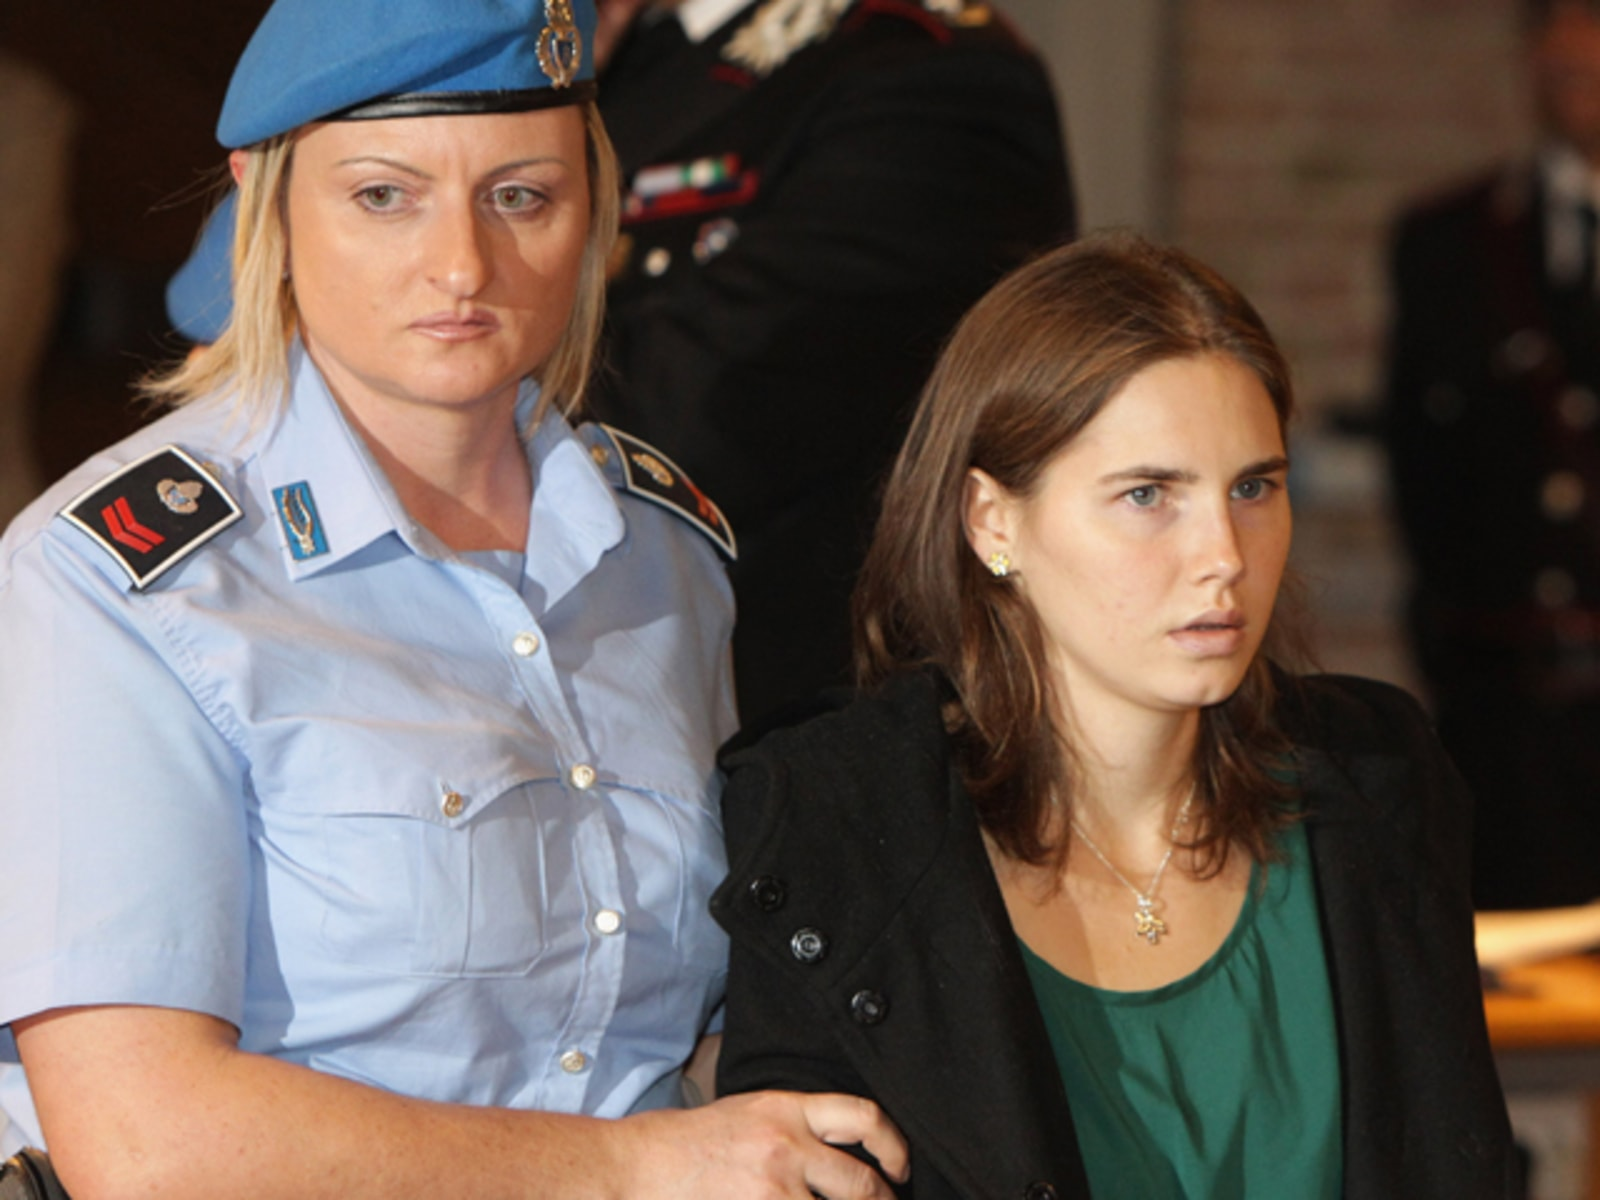 Image: Amanda Knox and Raffaele Sollecito Win Their Appeal Against Their Conviction For The Murder Of Meredith Kercher